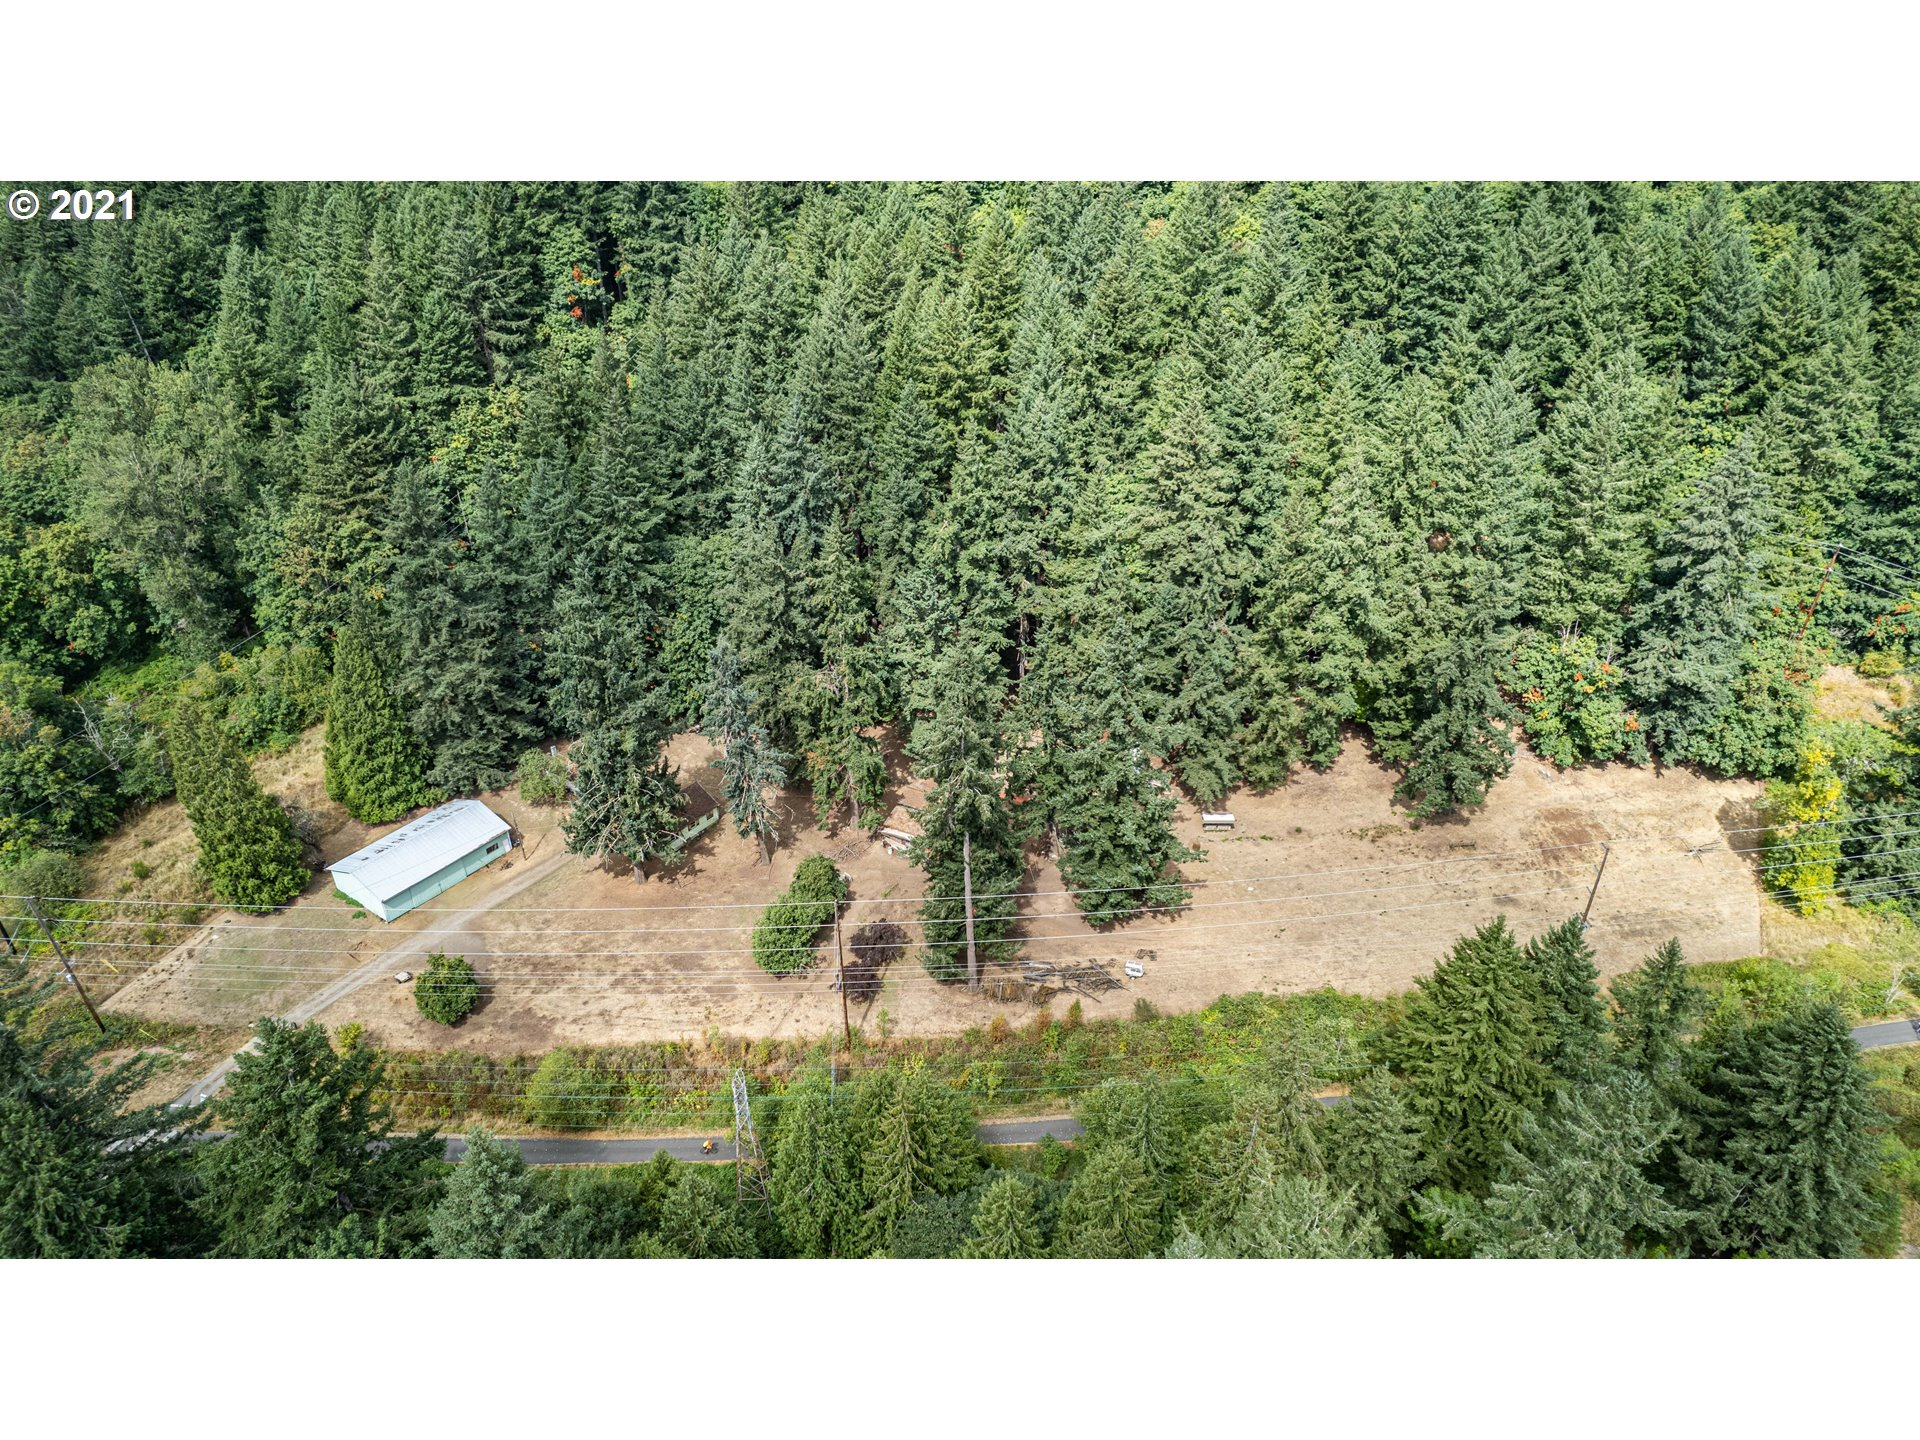 Estate property. Hobby farm on 4.72 fenced acres (3 tax lots) in the city just off the Springwater corridor & backs up to Powell Butte Nature Park. 36x60 shop for all your toys. Low taxes with farm tax deferral. Sheep on property. Bring your horses. House is a fixer - make it your dream. Newer drain field. Lots of possibilities and mature trees on property. Investment/ Investors/developers? Buyer to do own due diligence. Sold AS/IS. Appointment Only.